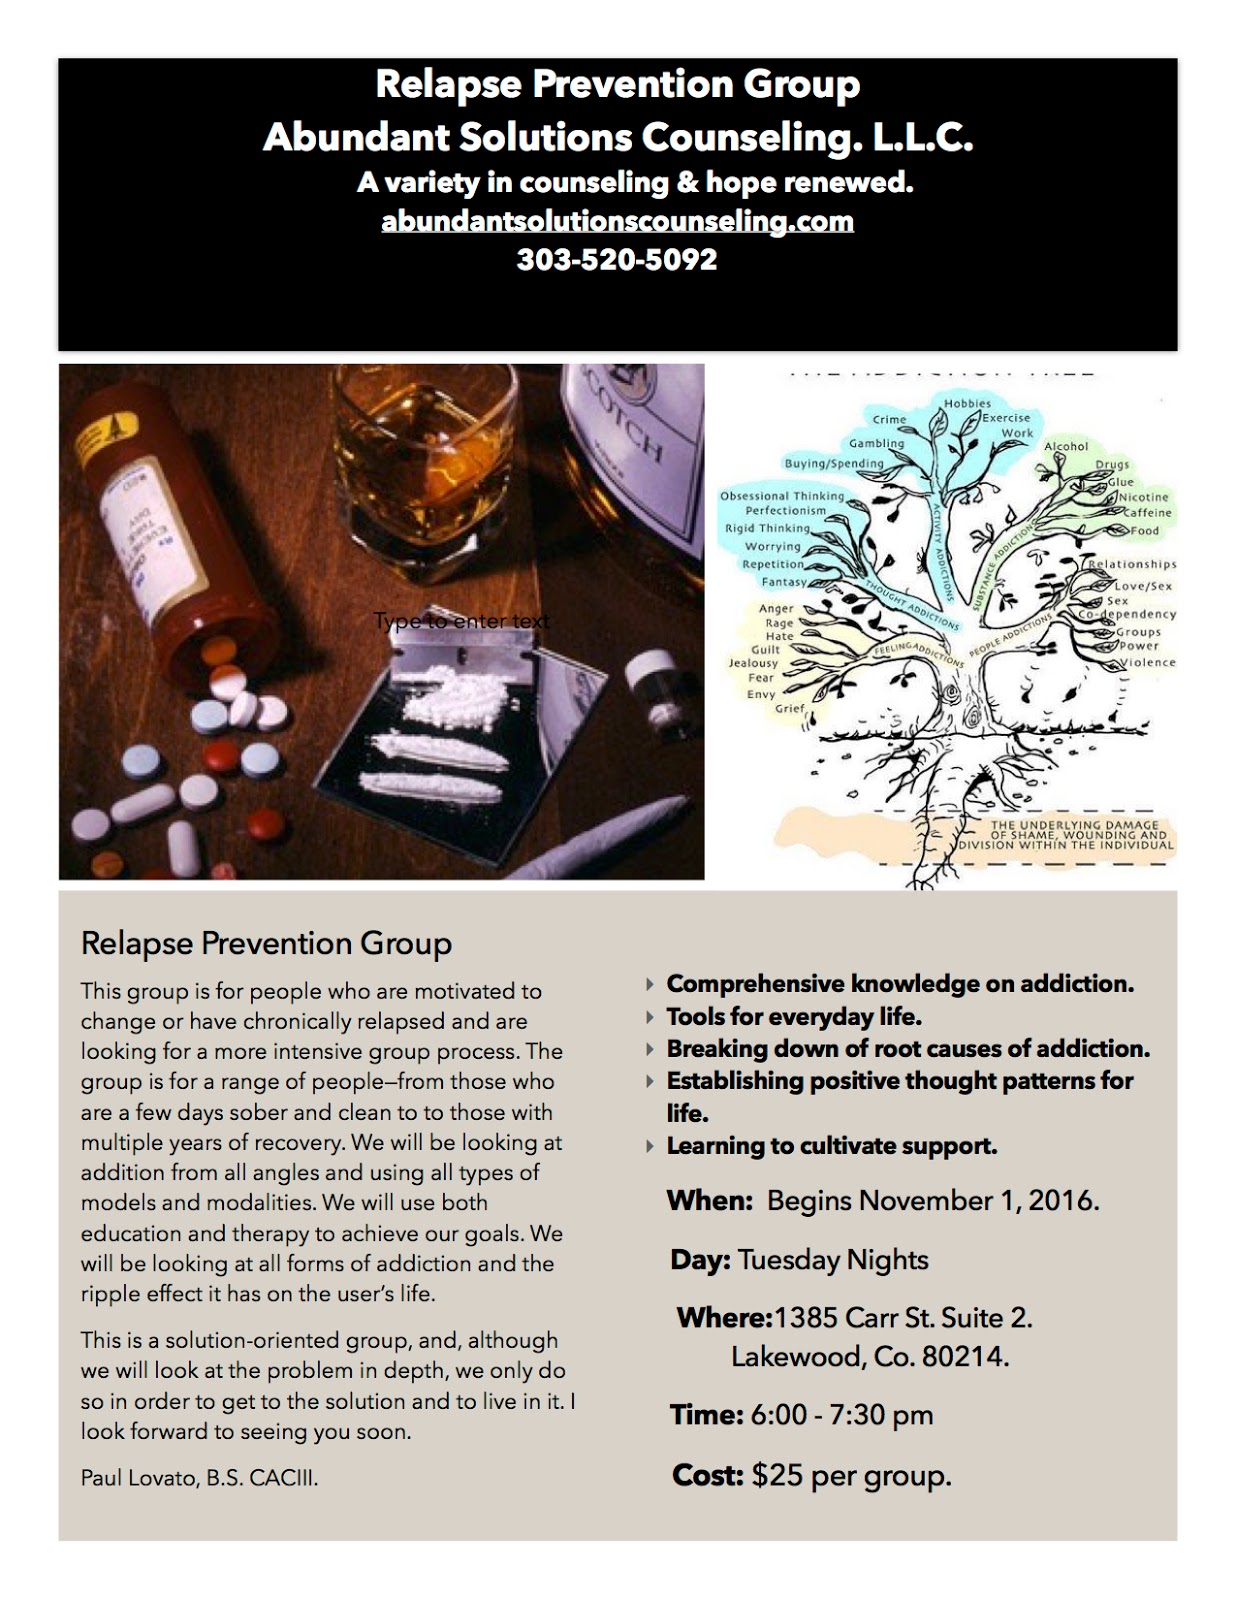 Abundant Solutions Counseling Relapse Prevention Group